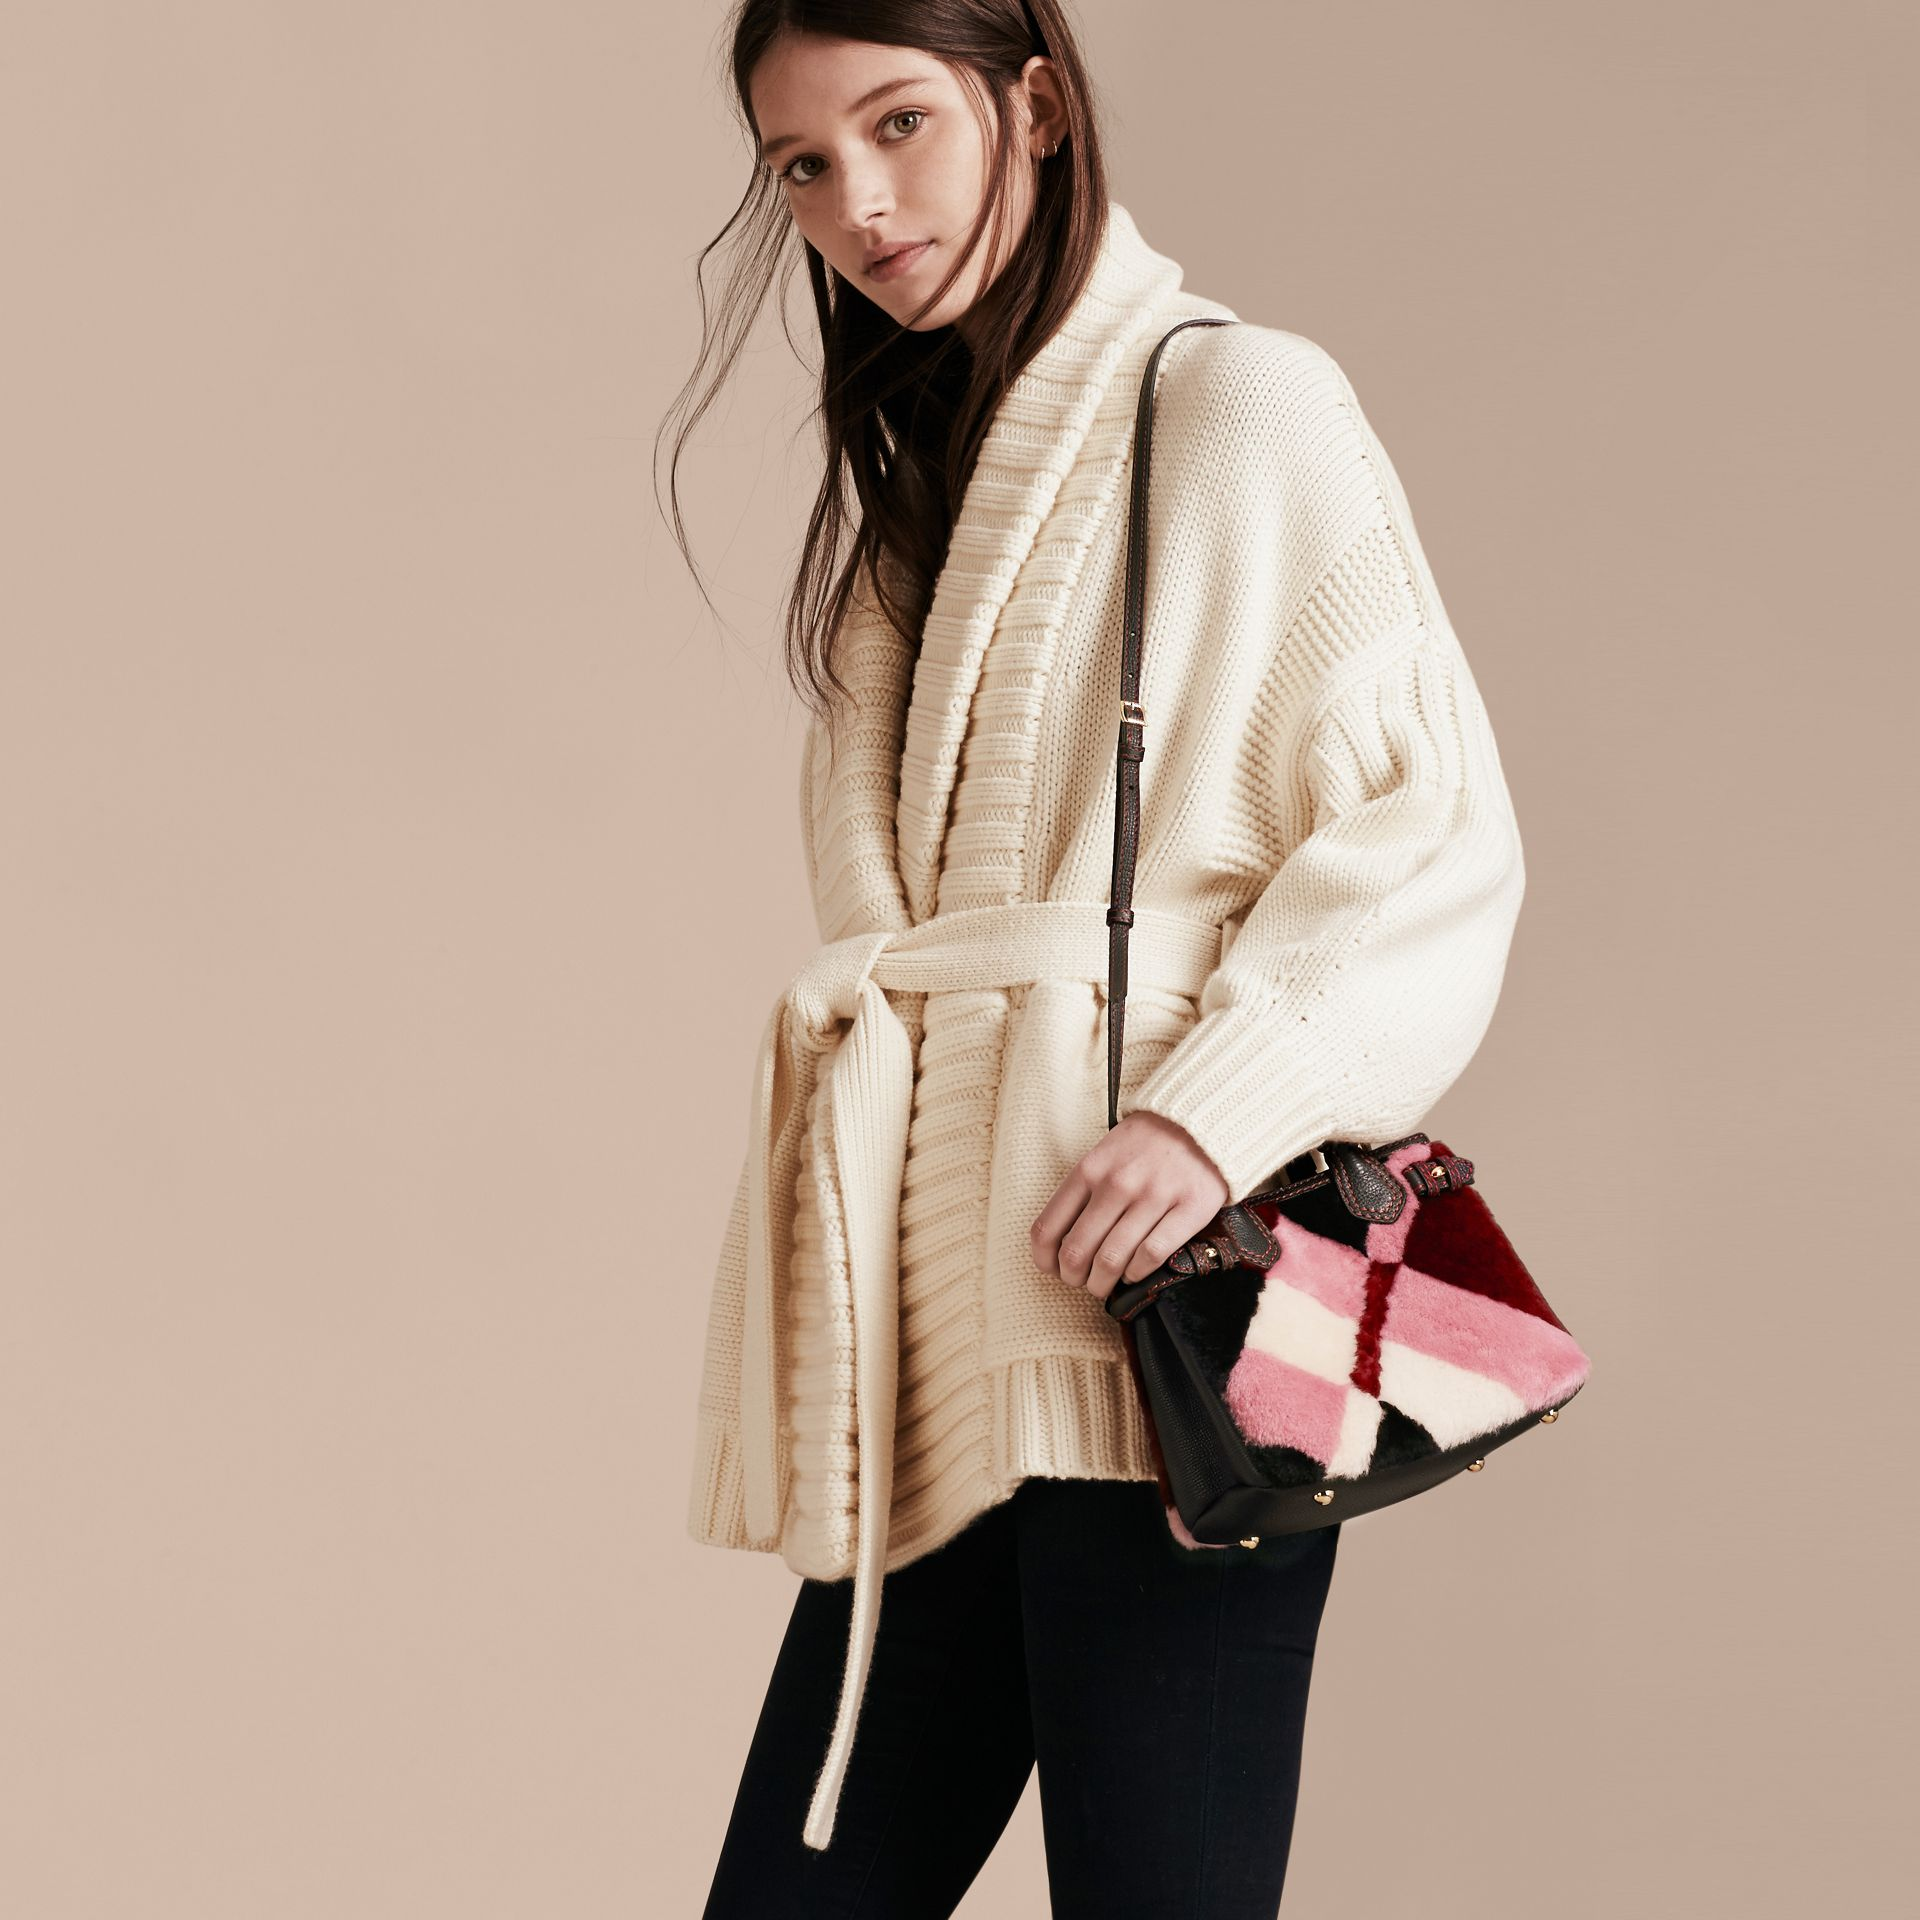 Sac The Baby Banner en cuir et shearling en patchwork façon check (Rose) - Femme | Burberry - photo de la galerie 2